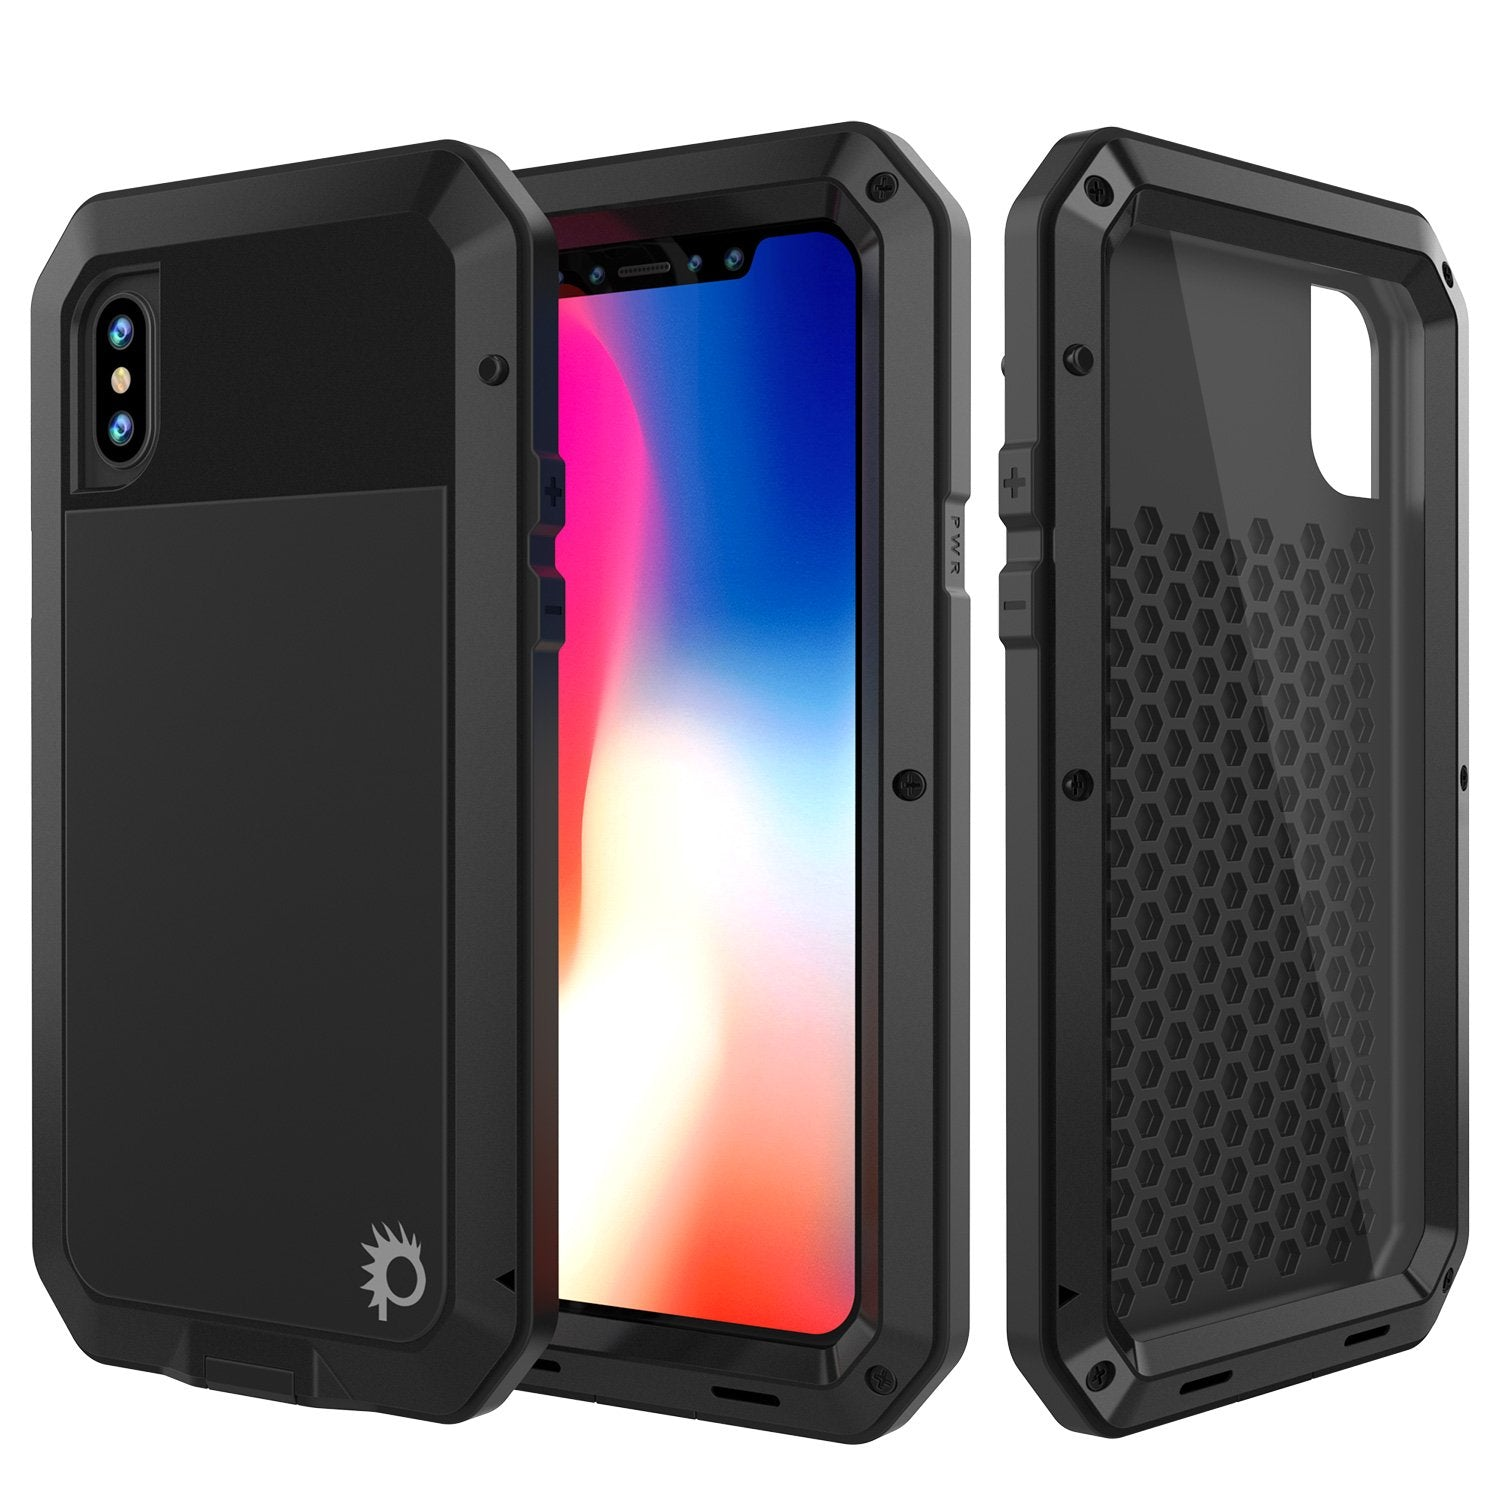 iPhone X Metal Case, Heavy Duty Military Grade Rugged Armor Cover [shock proof] Hybrid Full Body Hard Aluminum & TPU Design [non slip] W/ Prime Drop Protection for Apple iPhone 10 [Black]